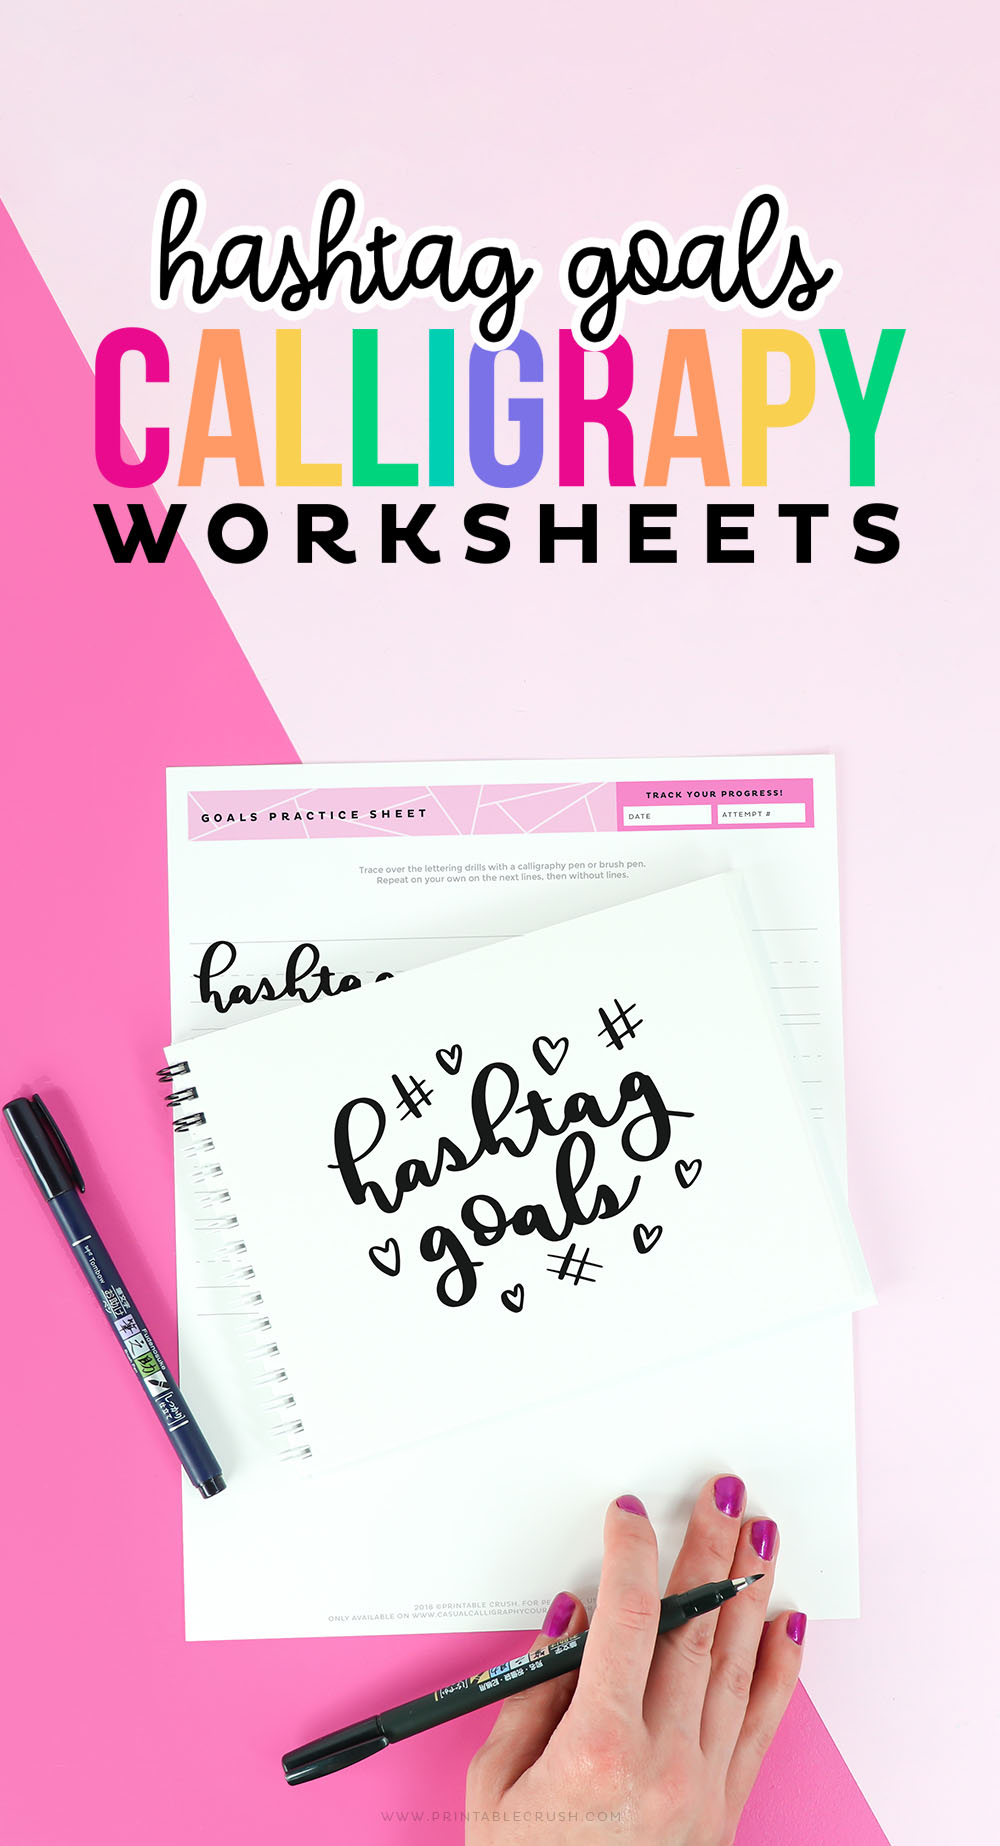 Practice your brush lettering and calligraphy skills with 7 pages of FREE Hashtag Goals Calligraphy Worksheets! #goals #calligraphypractice #calligraphyworksheets #calligraphy #brushlettering #tombowpro #printablecrush via @printablecrush